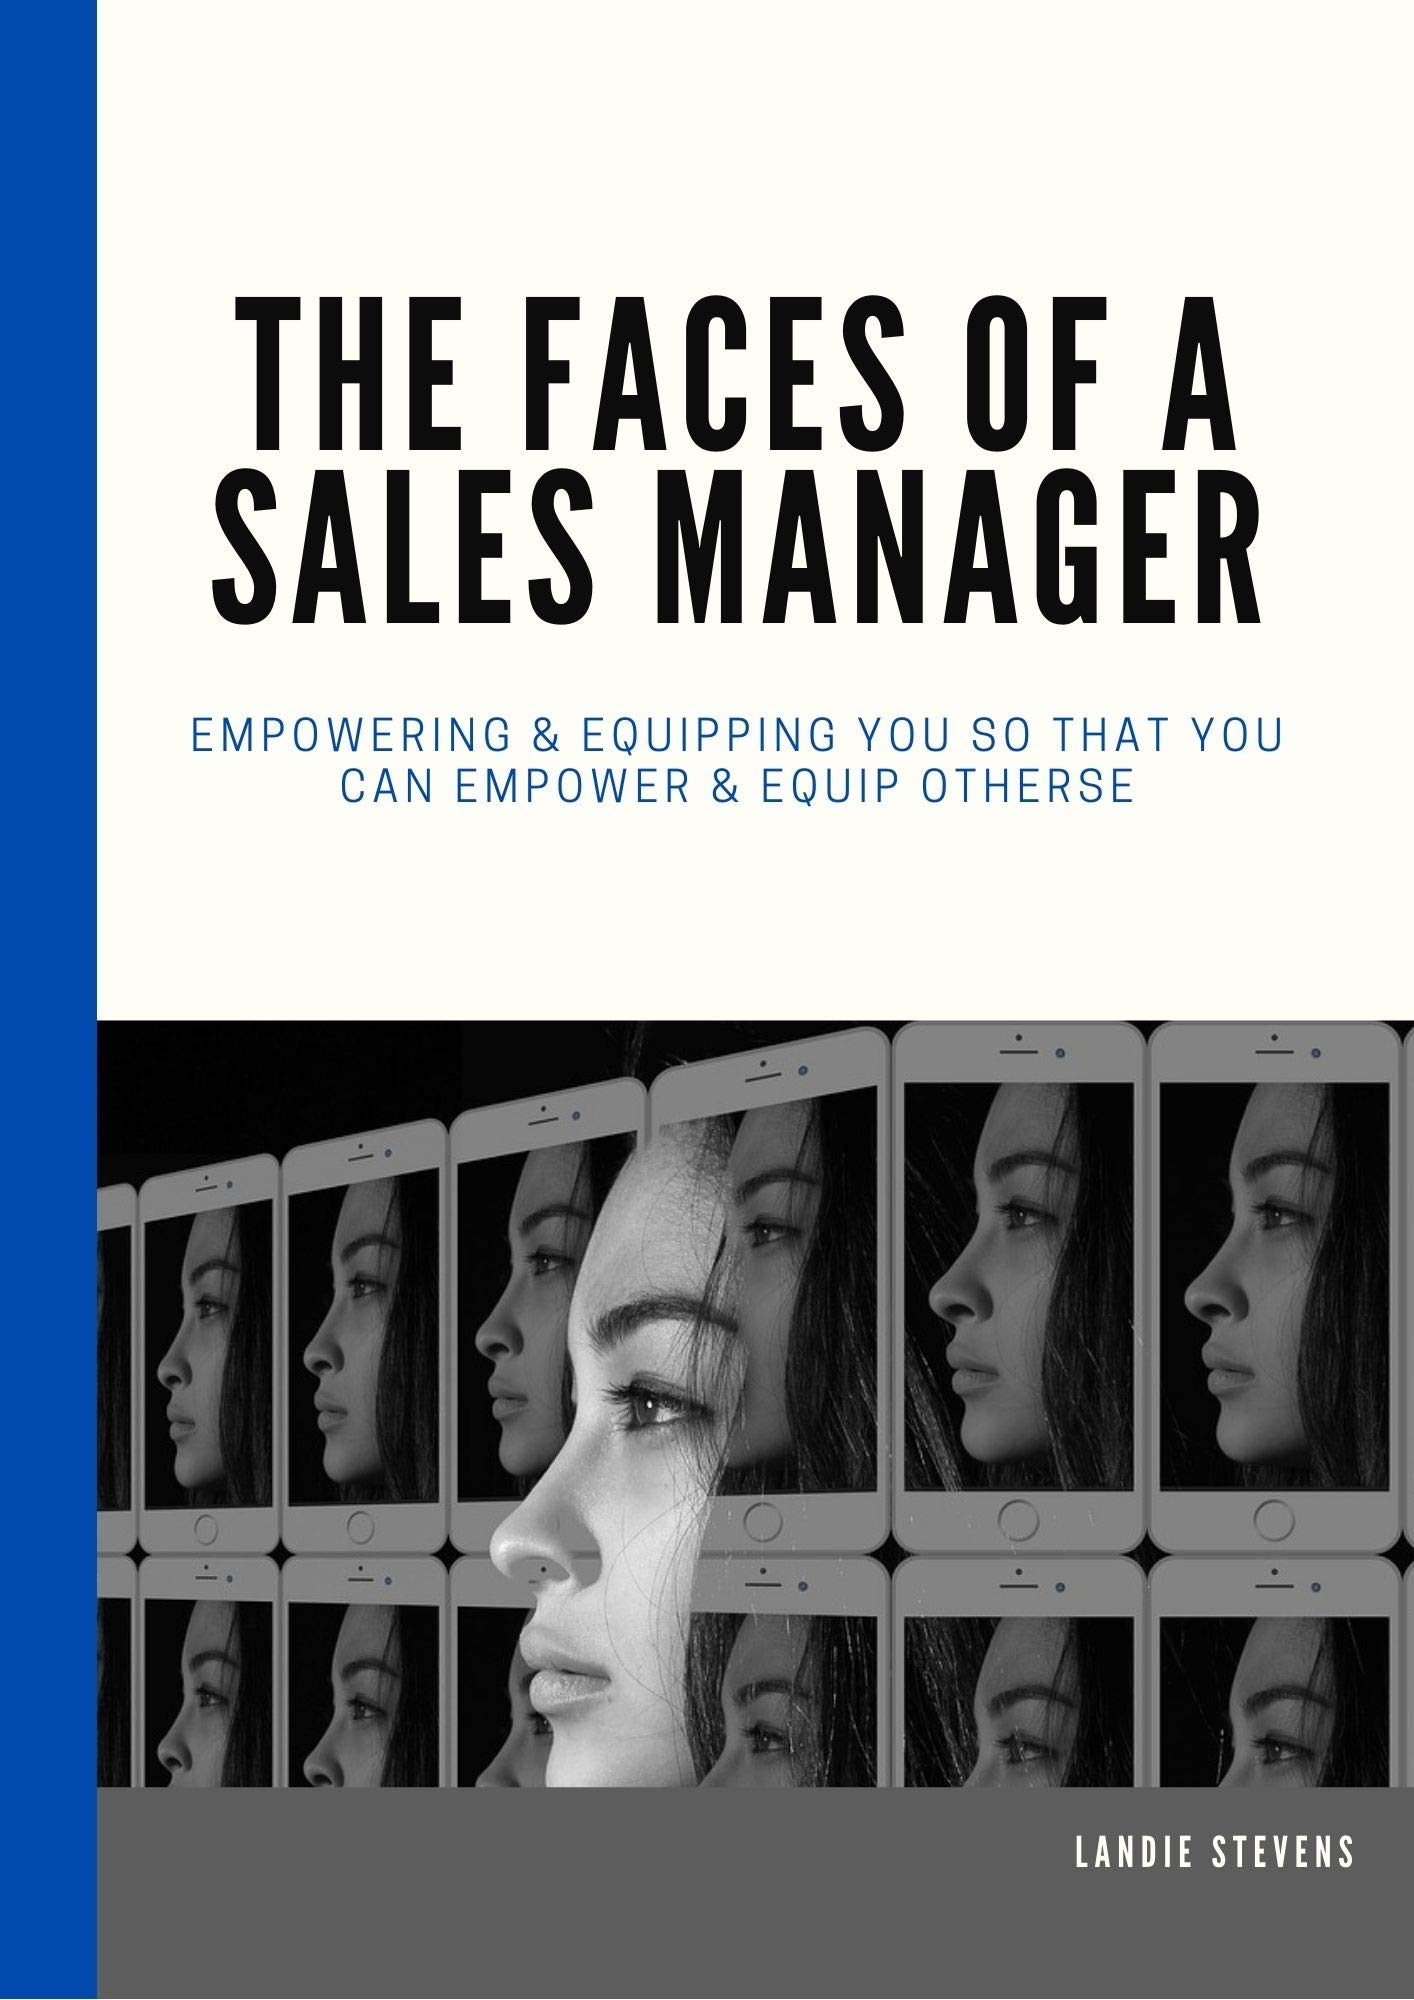 The Faces of a Sales Manager